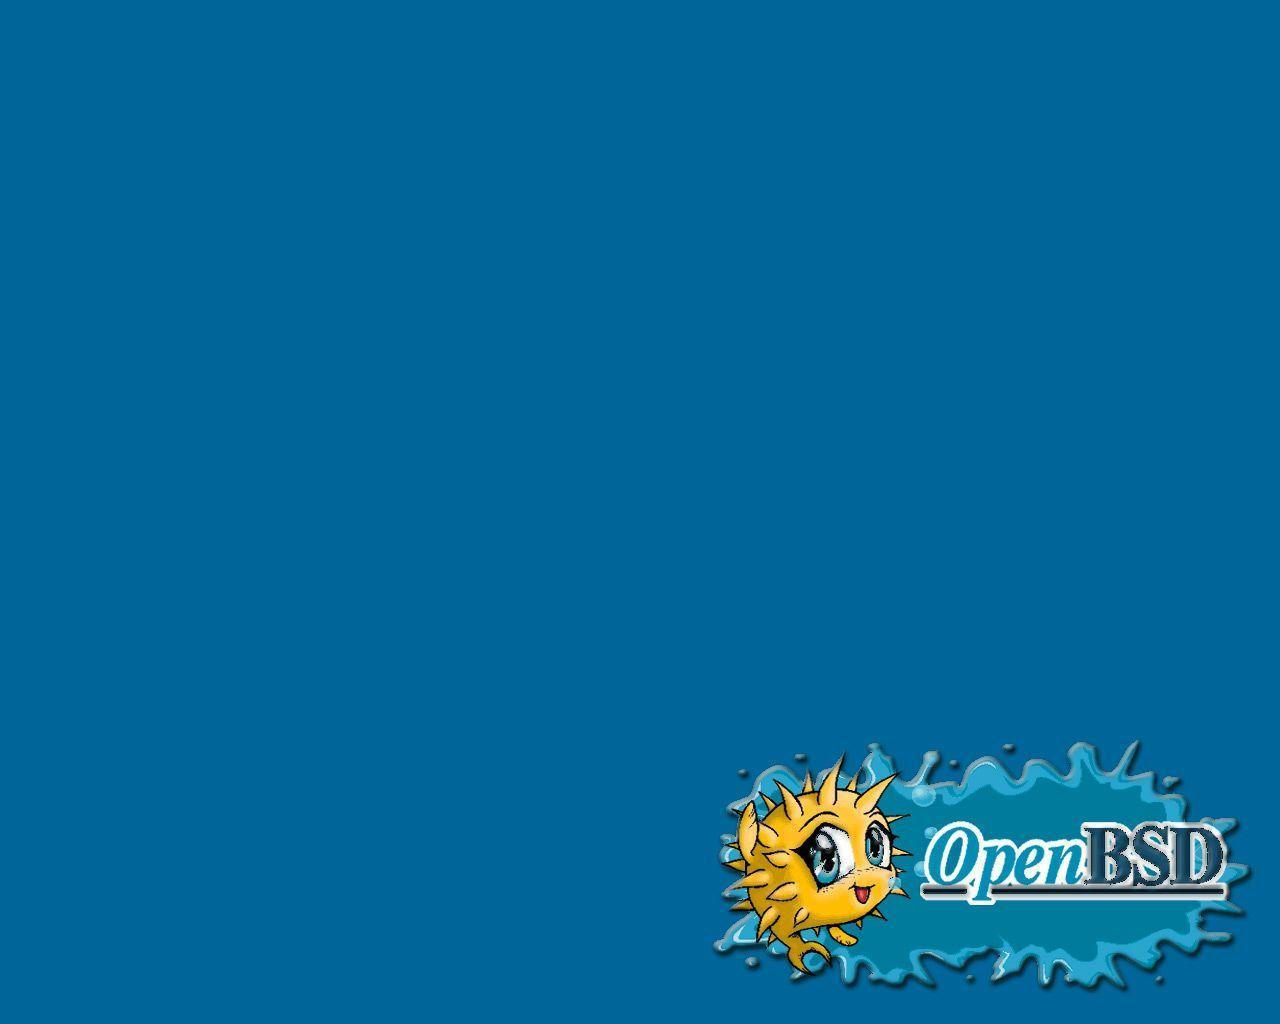 OpenBSD picture Wallpapers